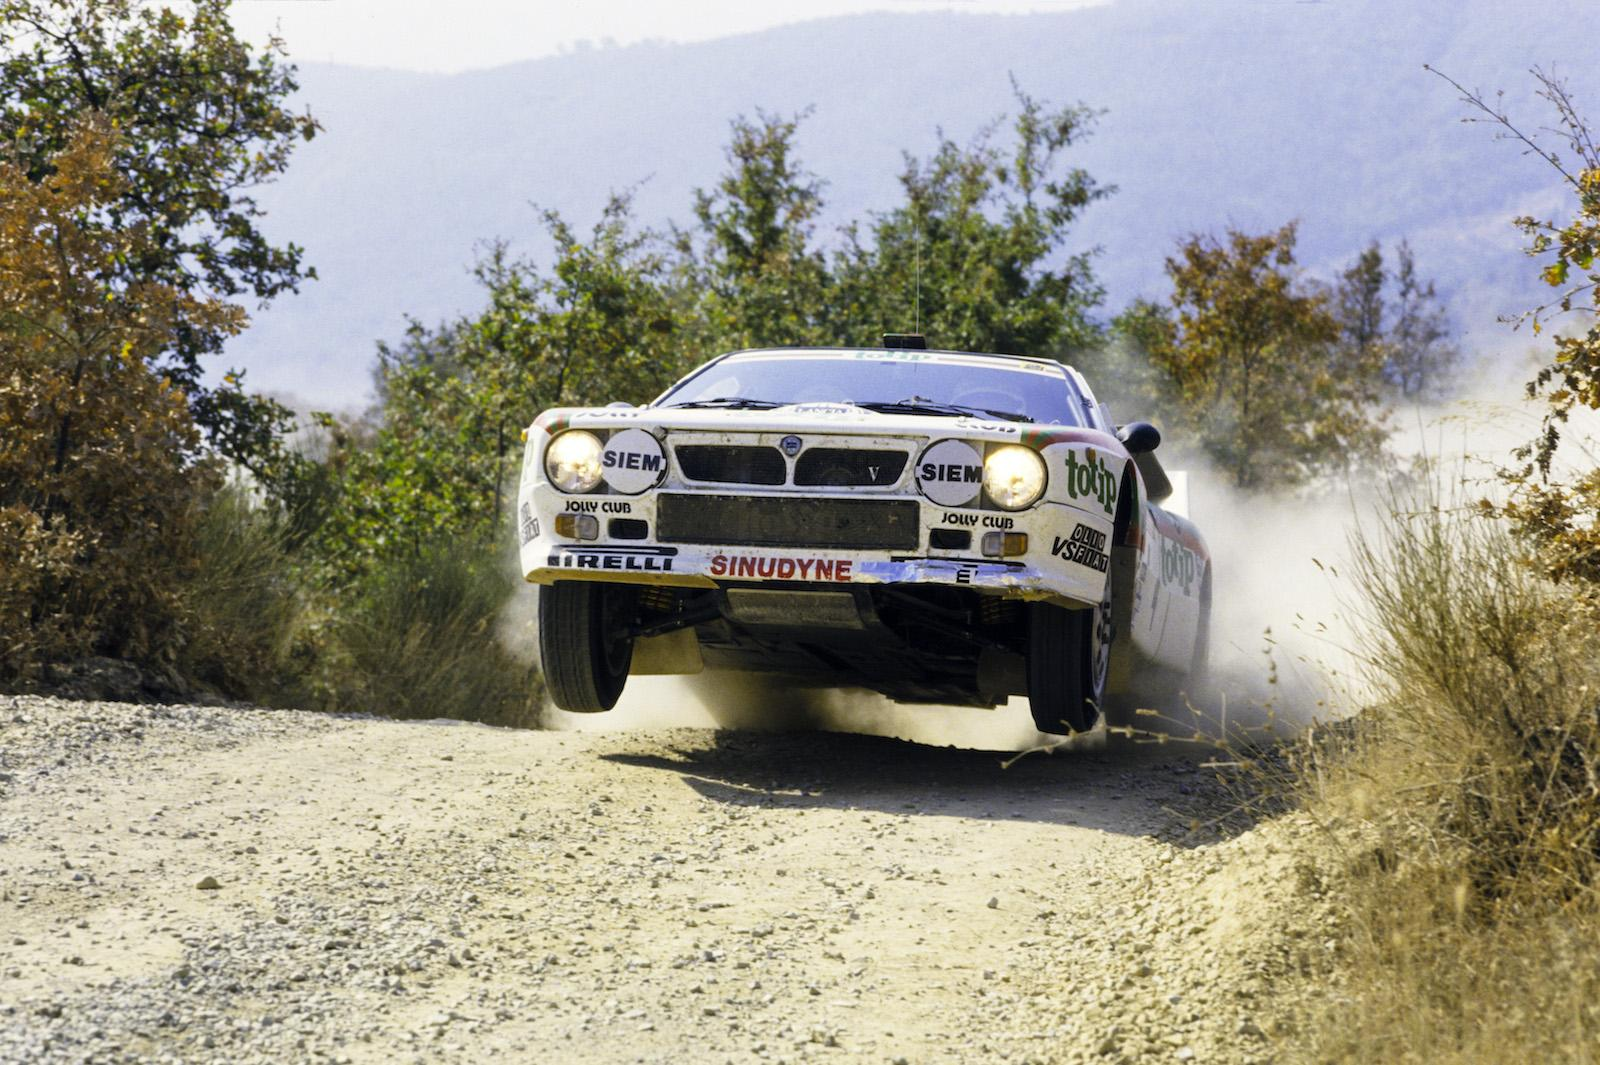 How Miki Biasion led the WRC through its toughest times